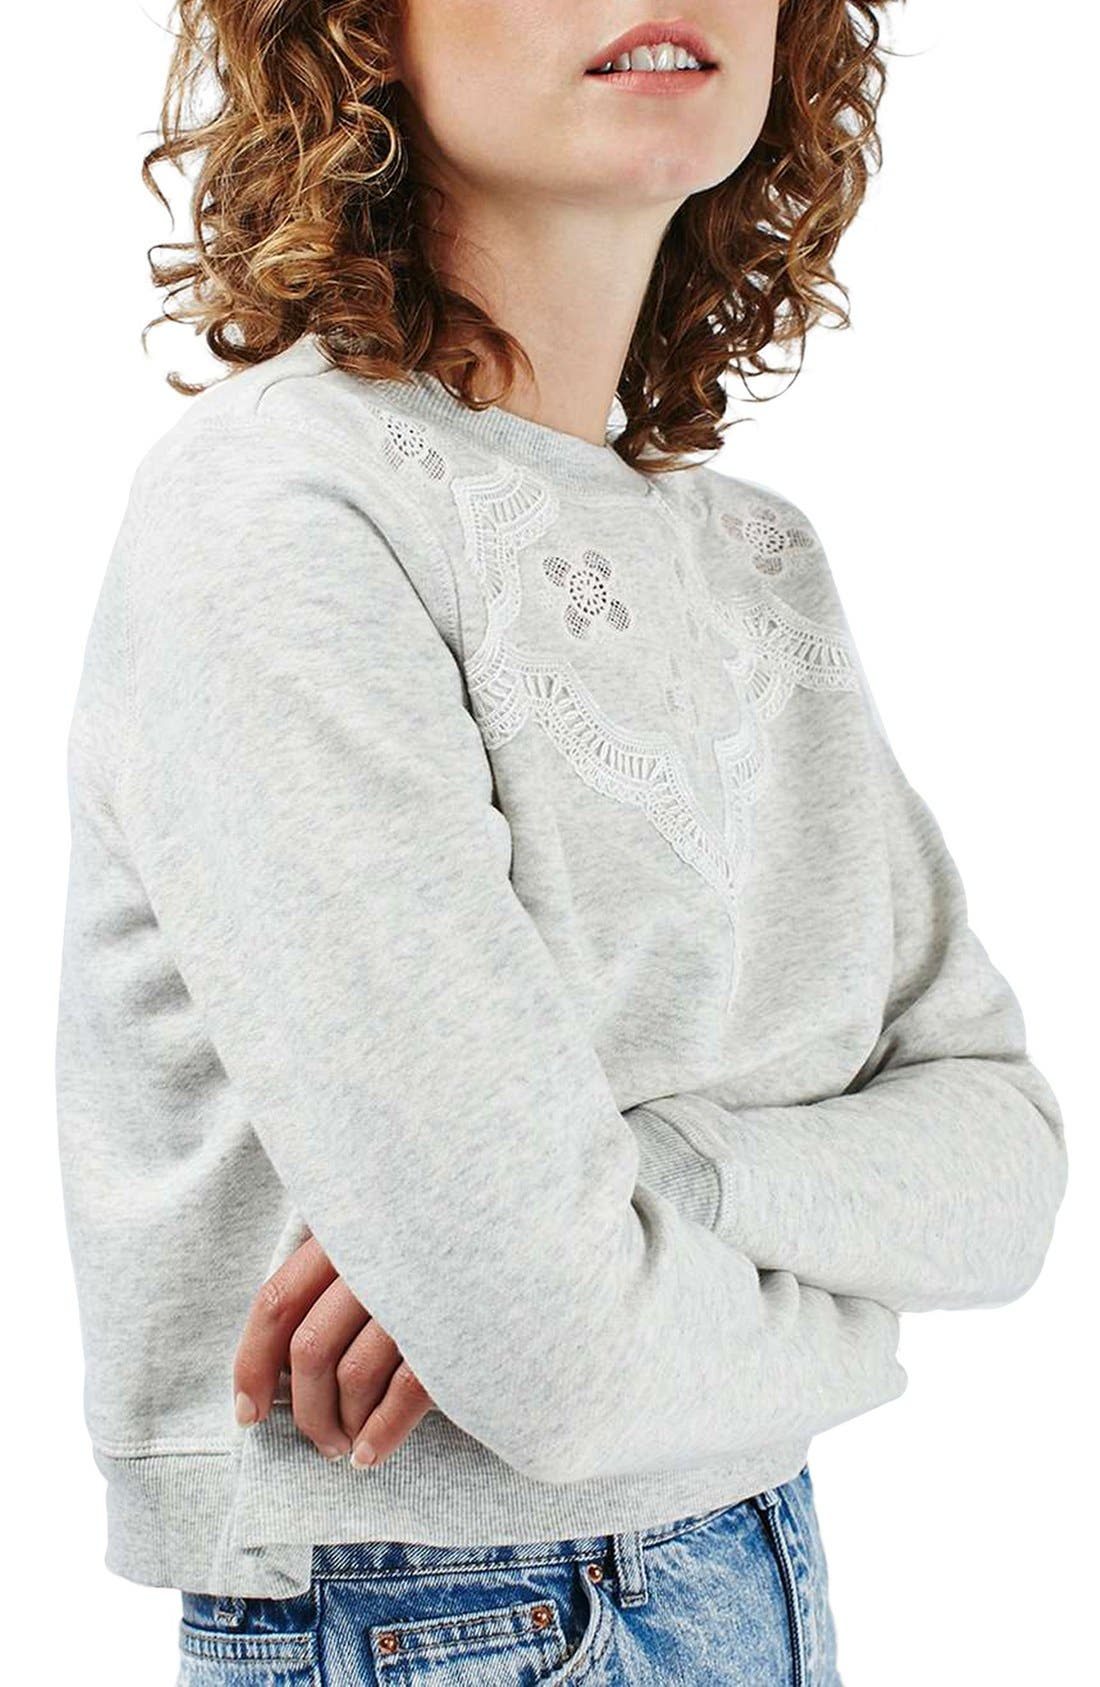 Alternate Image 1 Selected - Topshop Crochet Daisy Sweatshirt